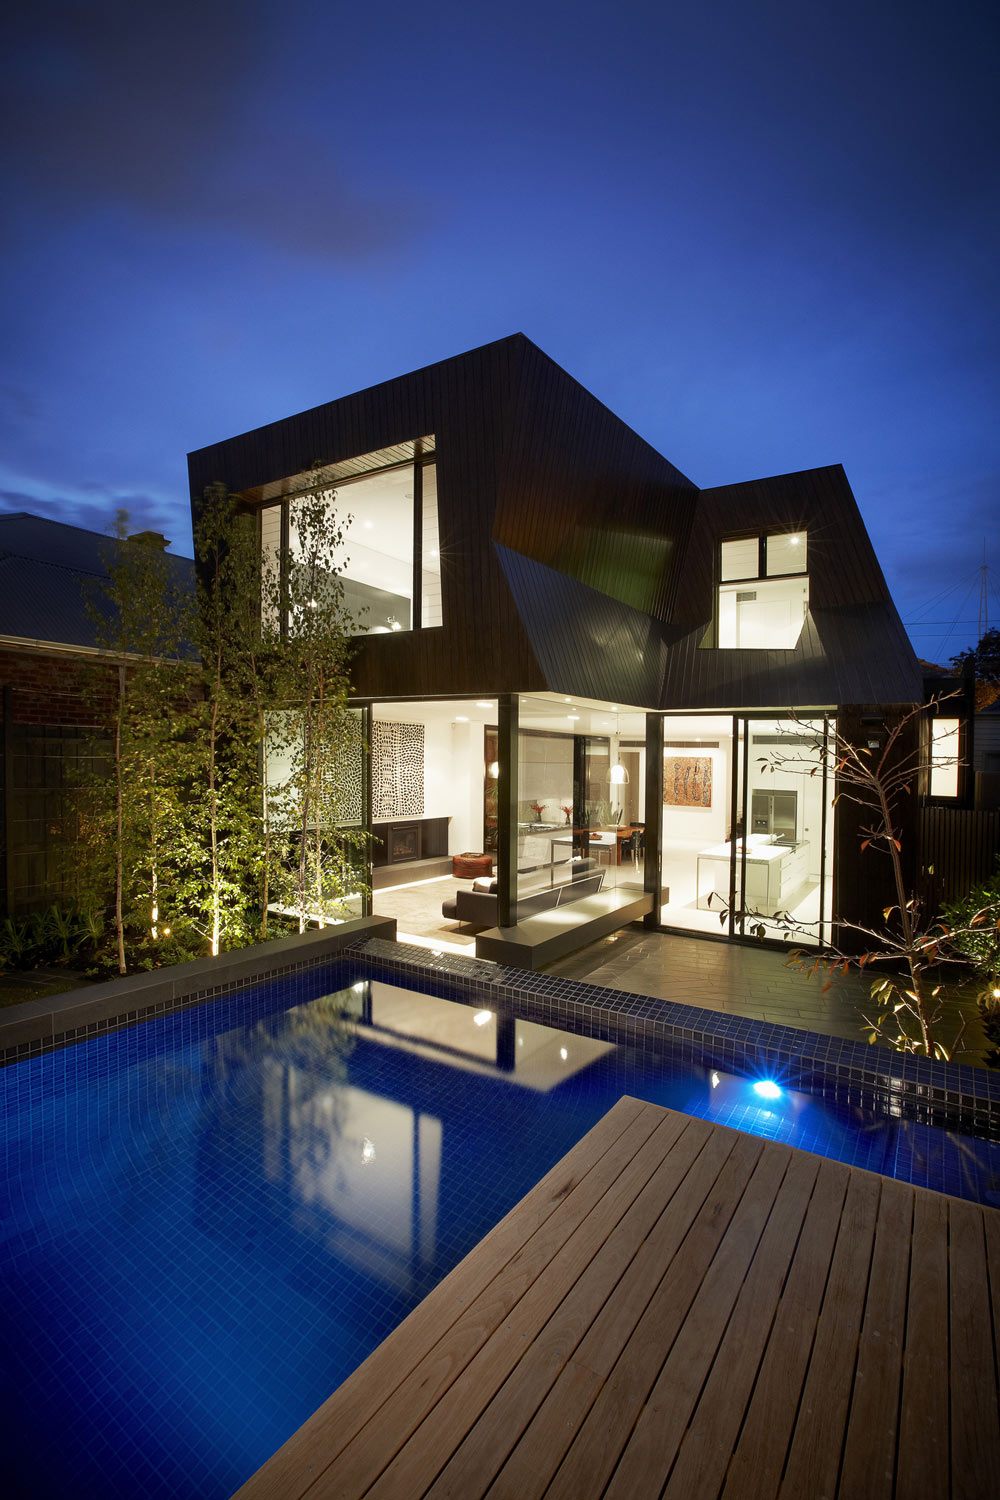 Enclave house in melbourne australia by bkk architects for Pool house plans designs